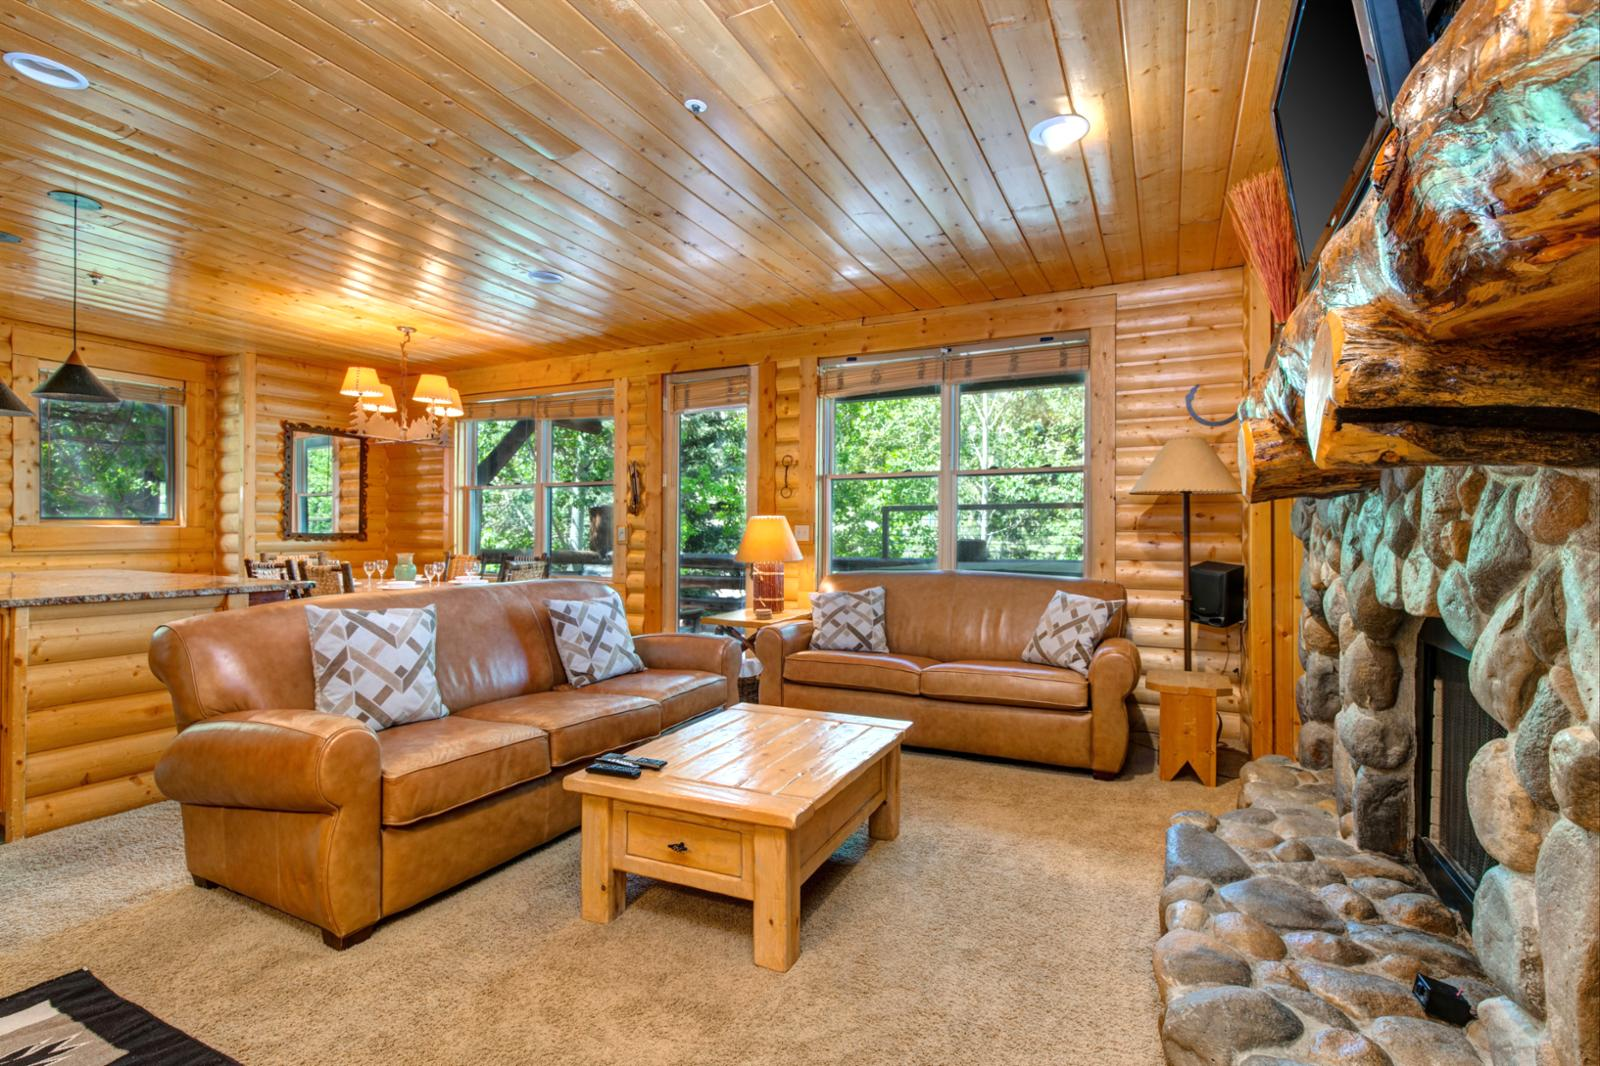 Sit comfortably in your own cozy cabin living room and watch  your favorite TV movie